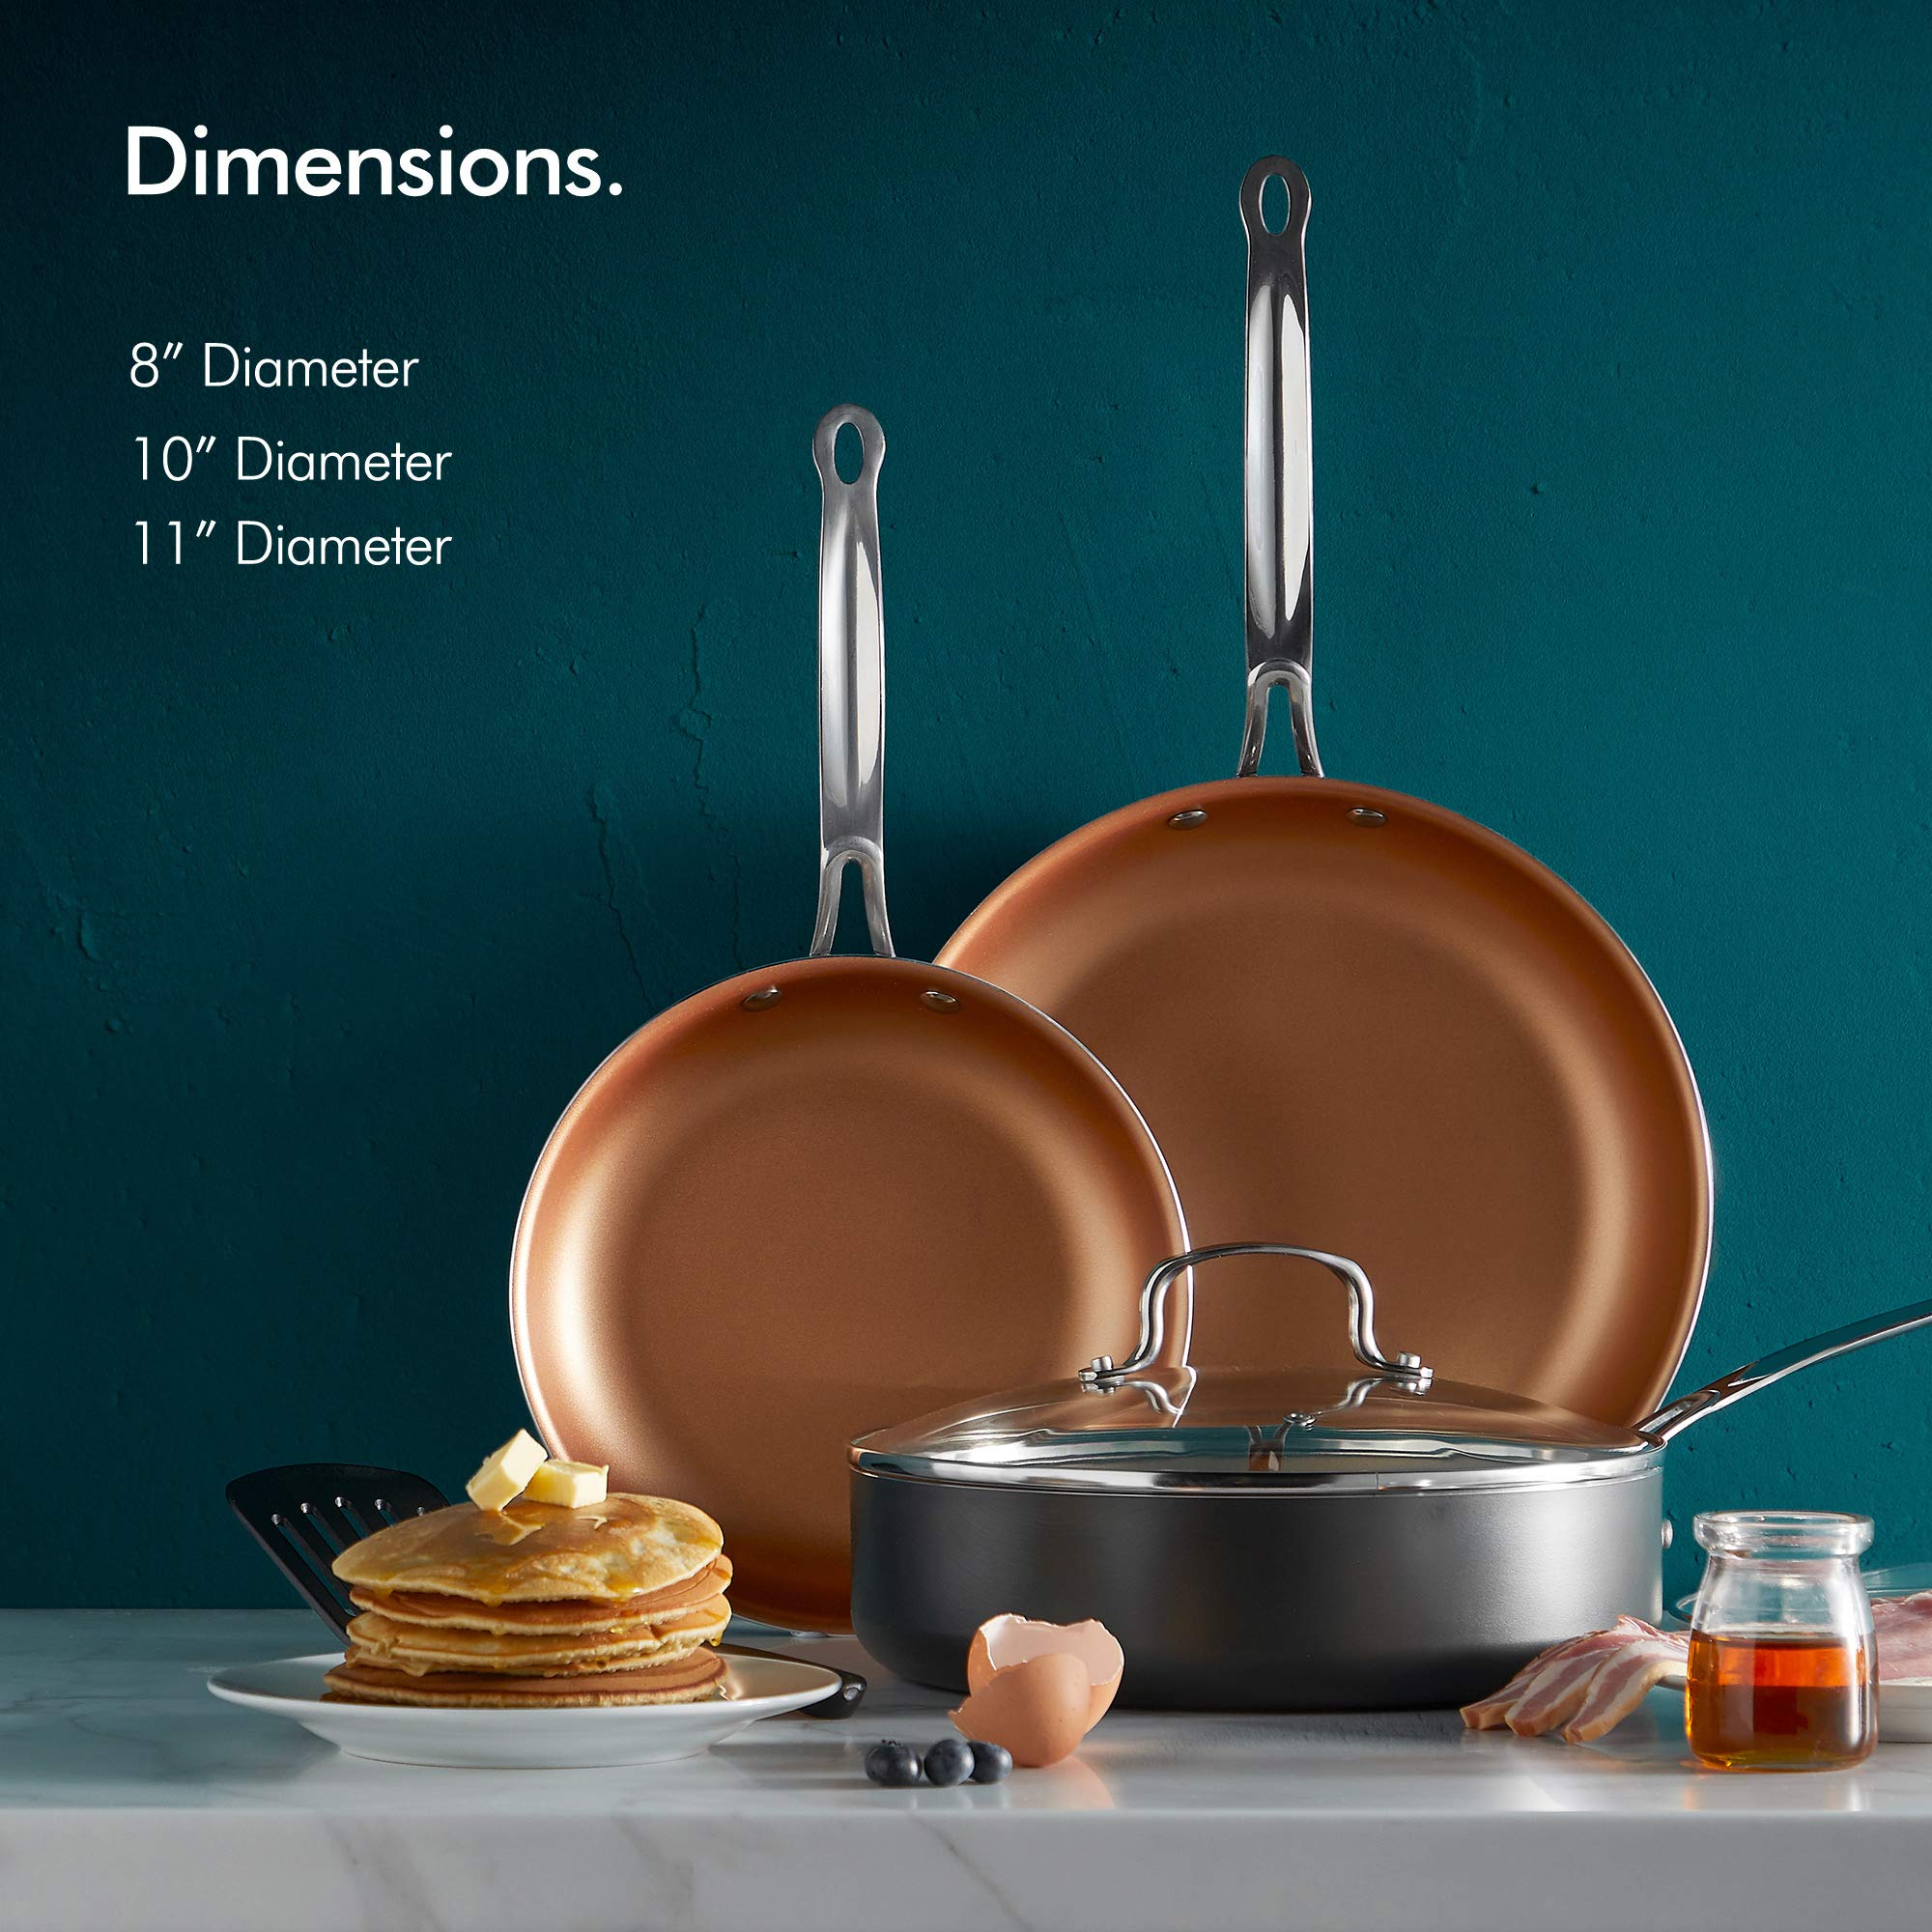 VonShef Non Stick Frying Pan Set - 8'', 10'' & 11'' Aluminum Skillets, Copper-Colored Interior, Stainless Steel Handles, Tempered Glass Lids and Spatula, Oven Safe and Induction Hob Ready, 6pc Set by VonShef (Image #2)